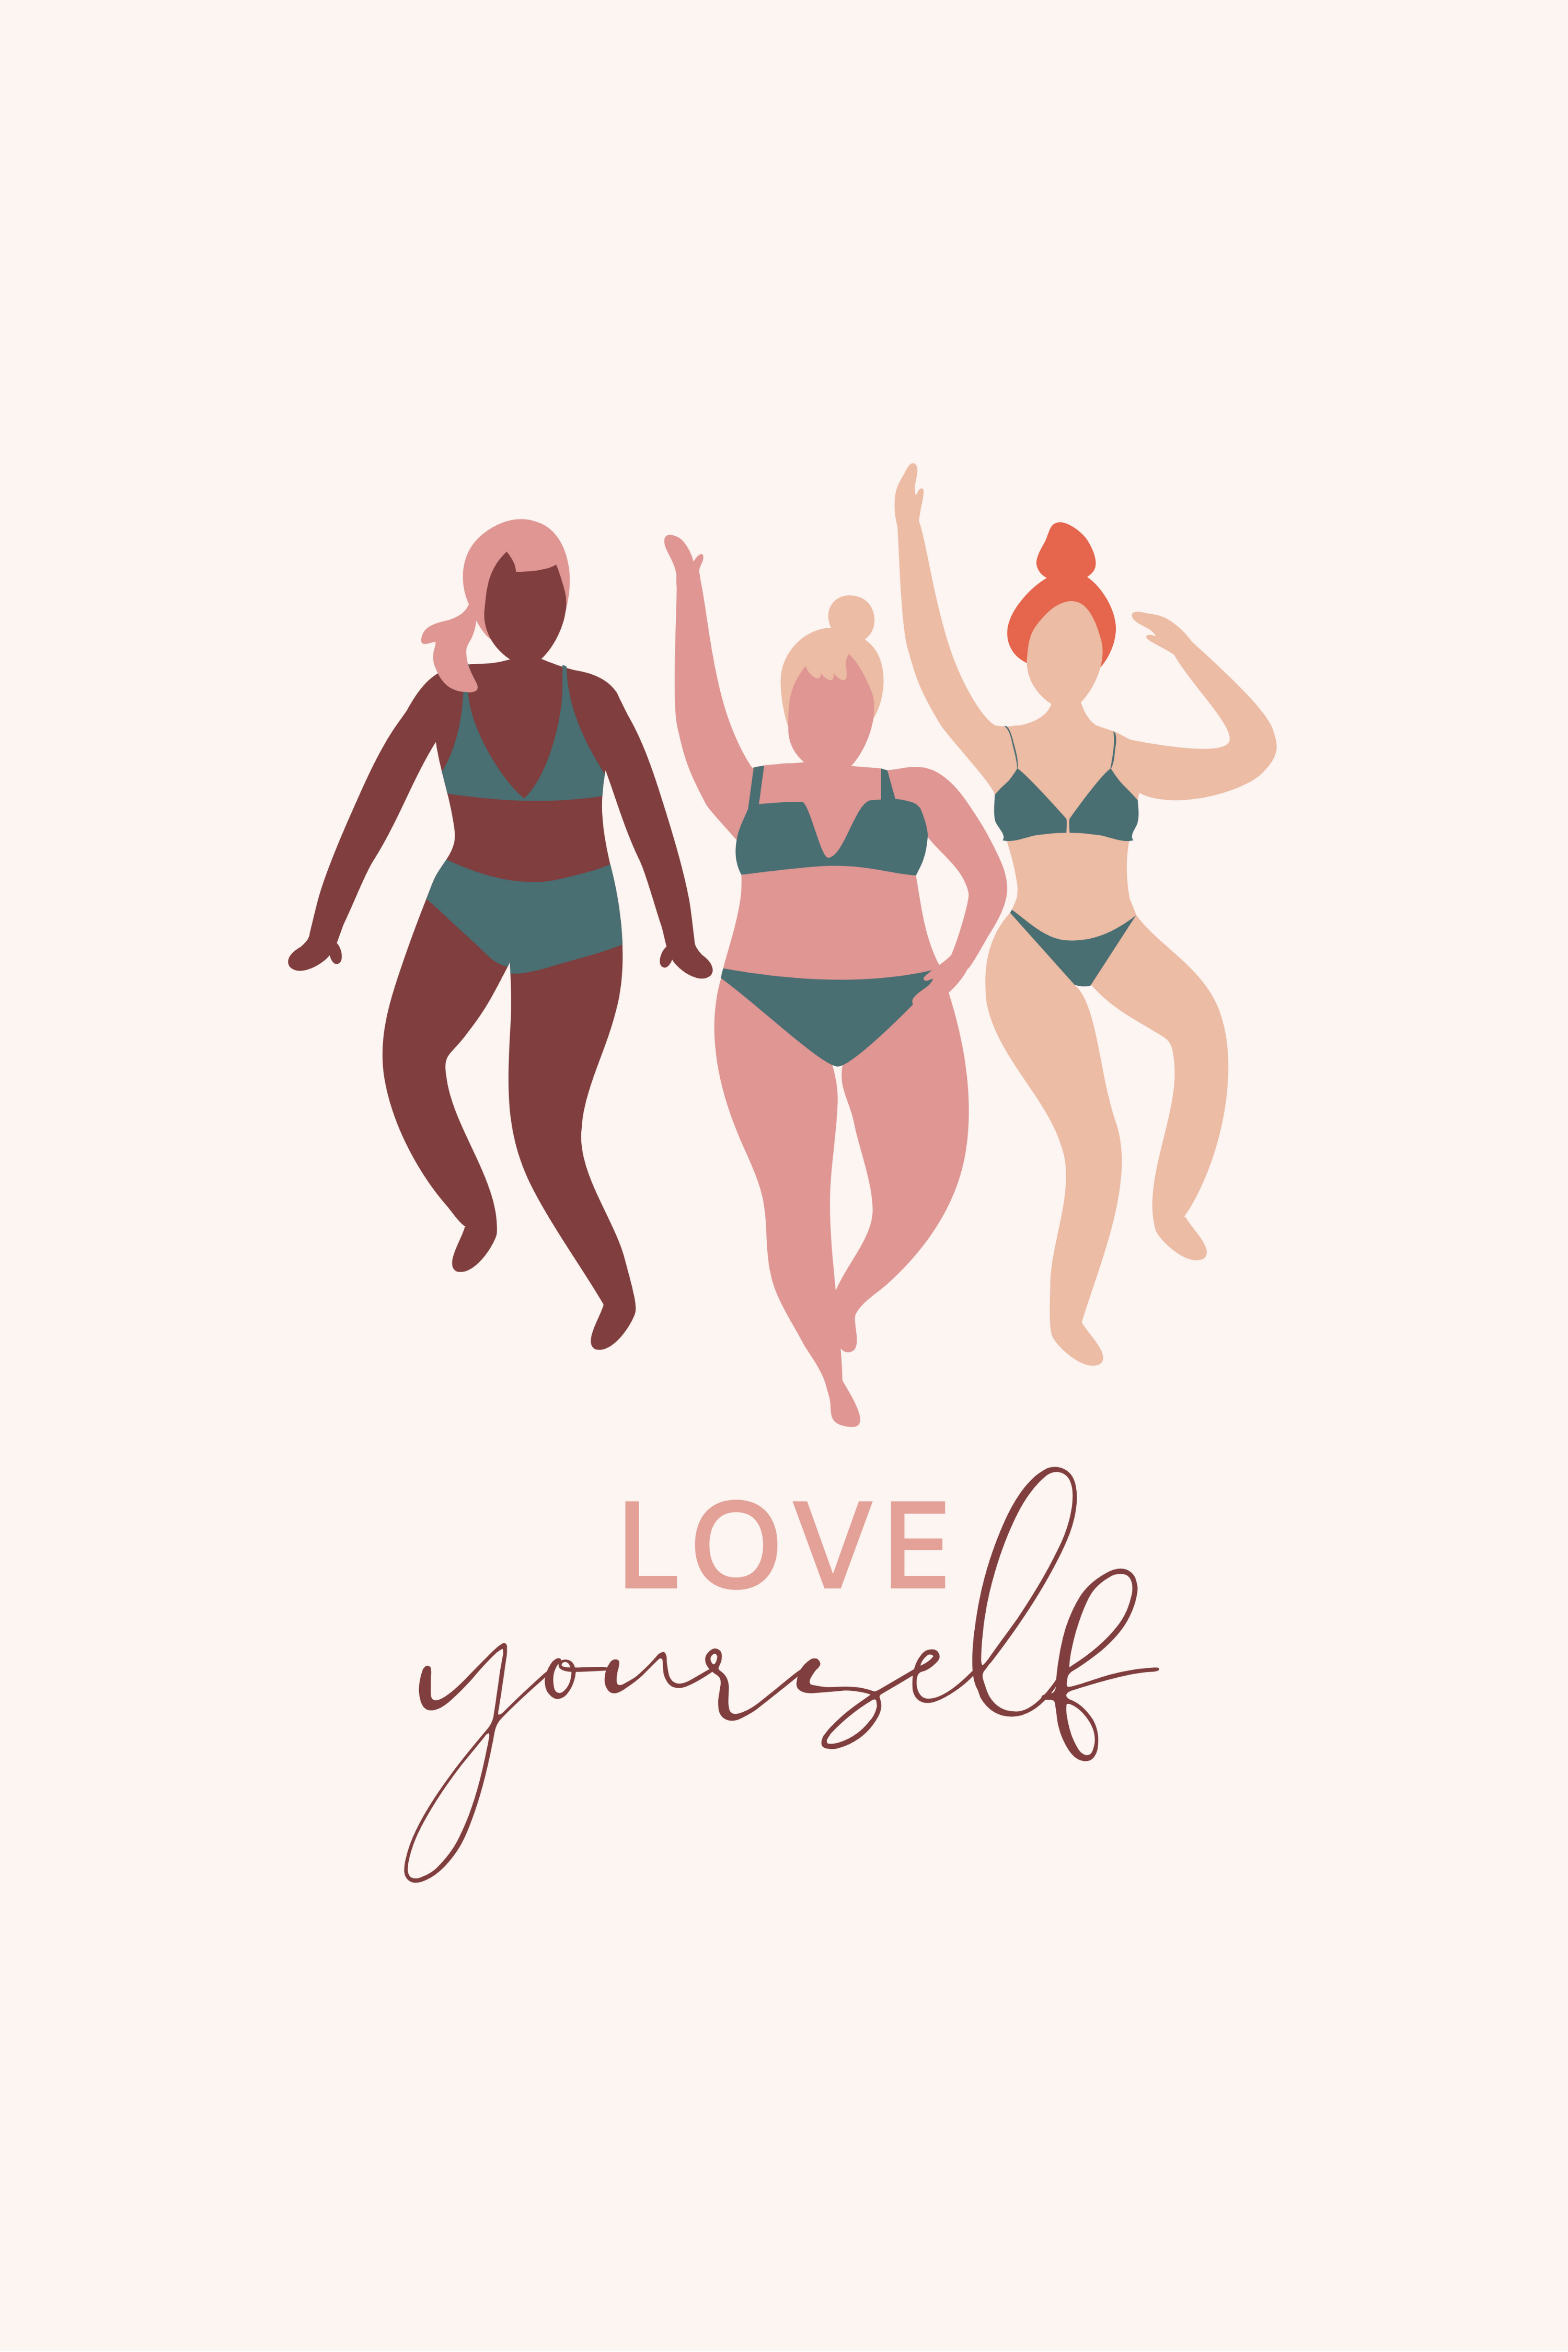 Love Your Body Positive Quote Print Positive Body Image Etsy In 2020 Body Positive Quotes Body Positivity Body Quotes